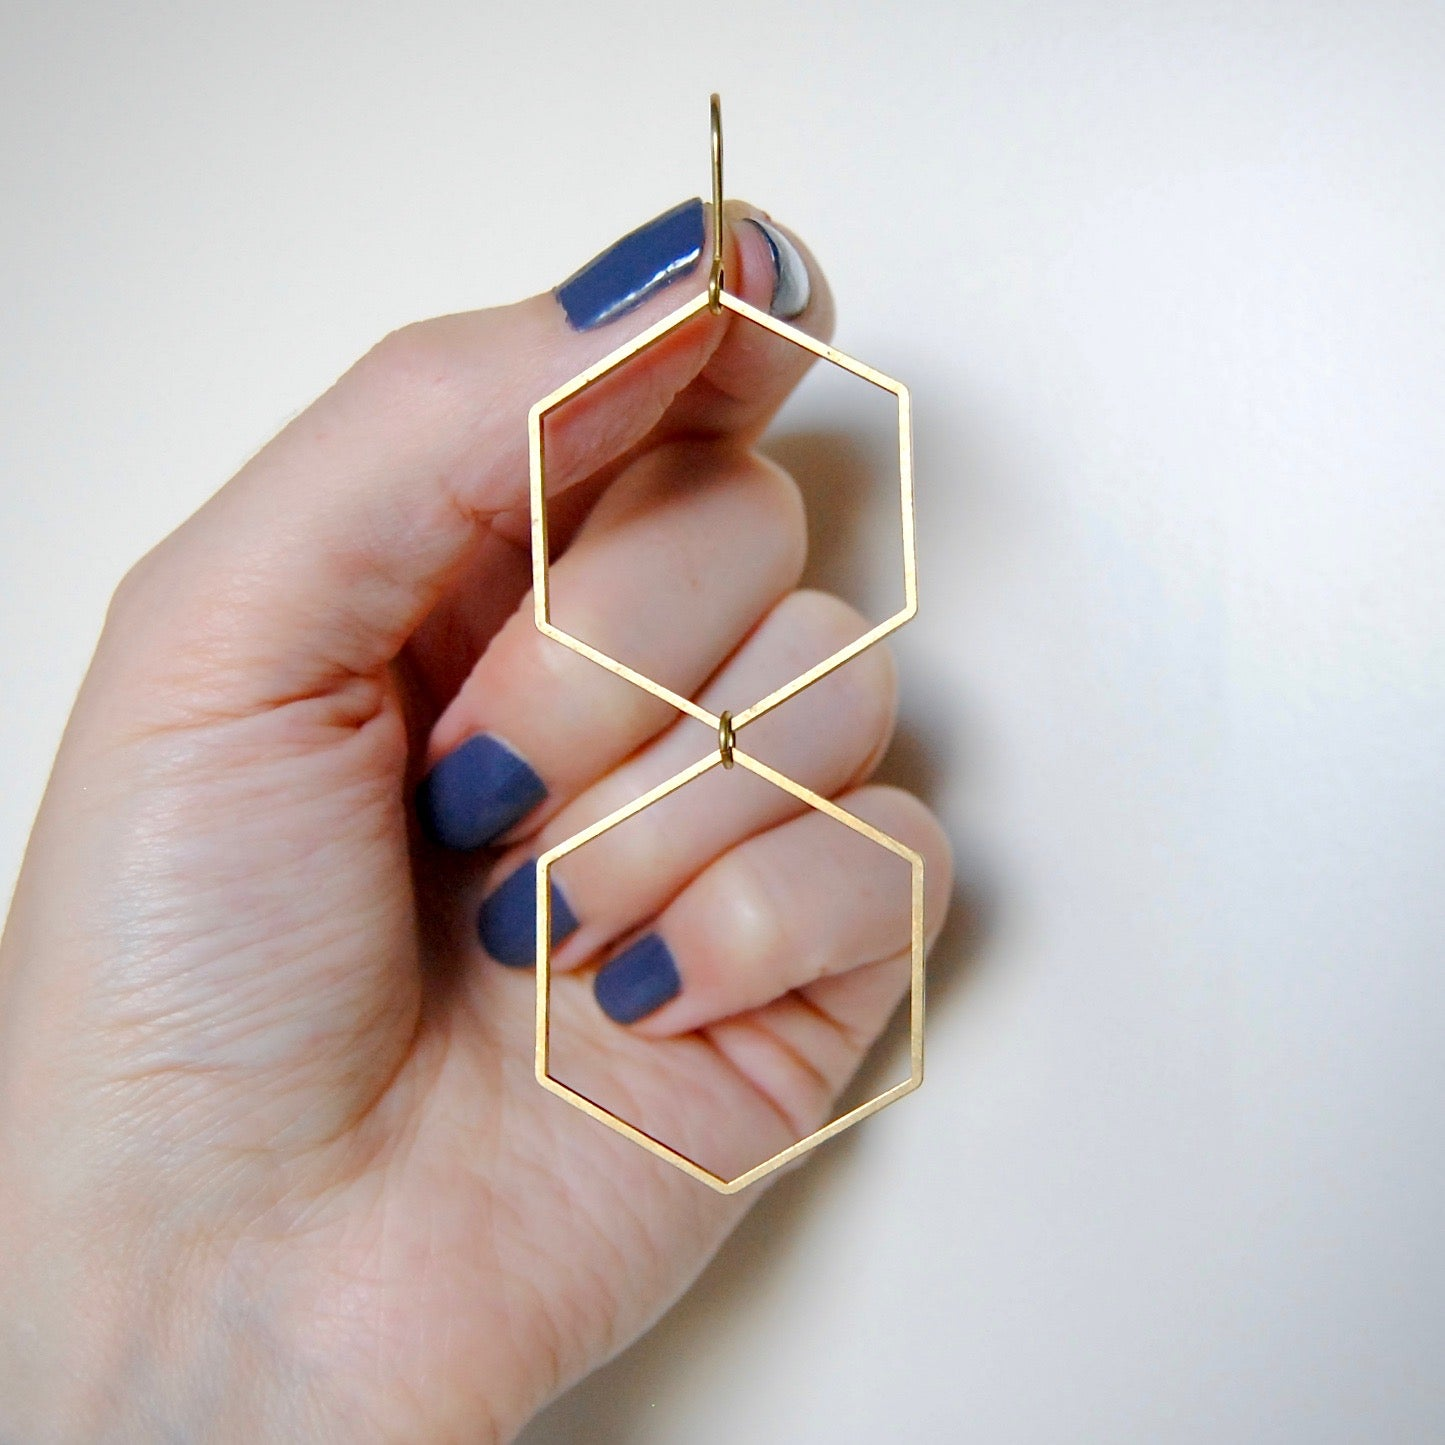 DOUBLE HEXAGON EARRINGS